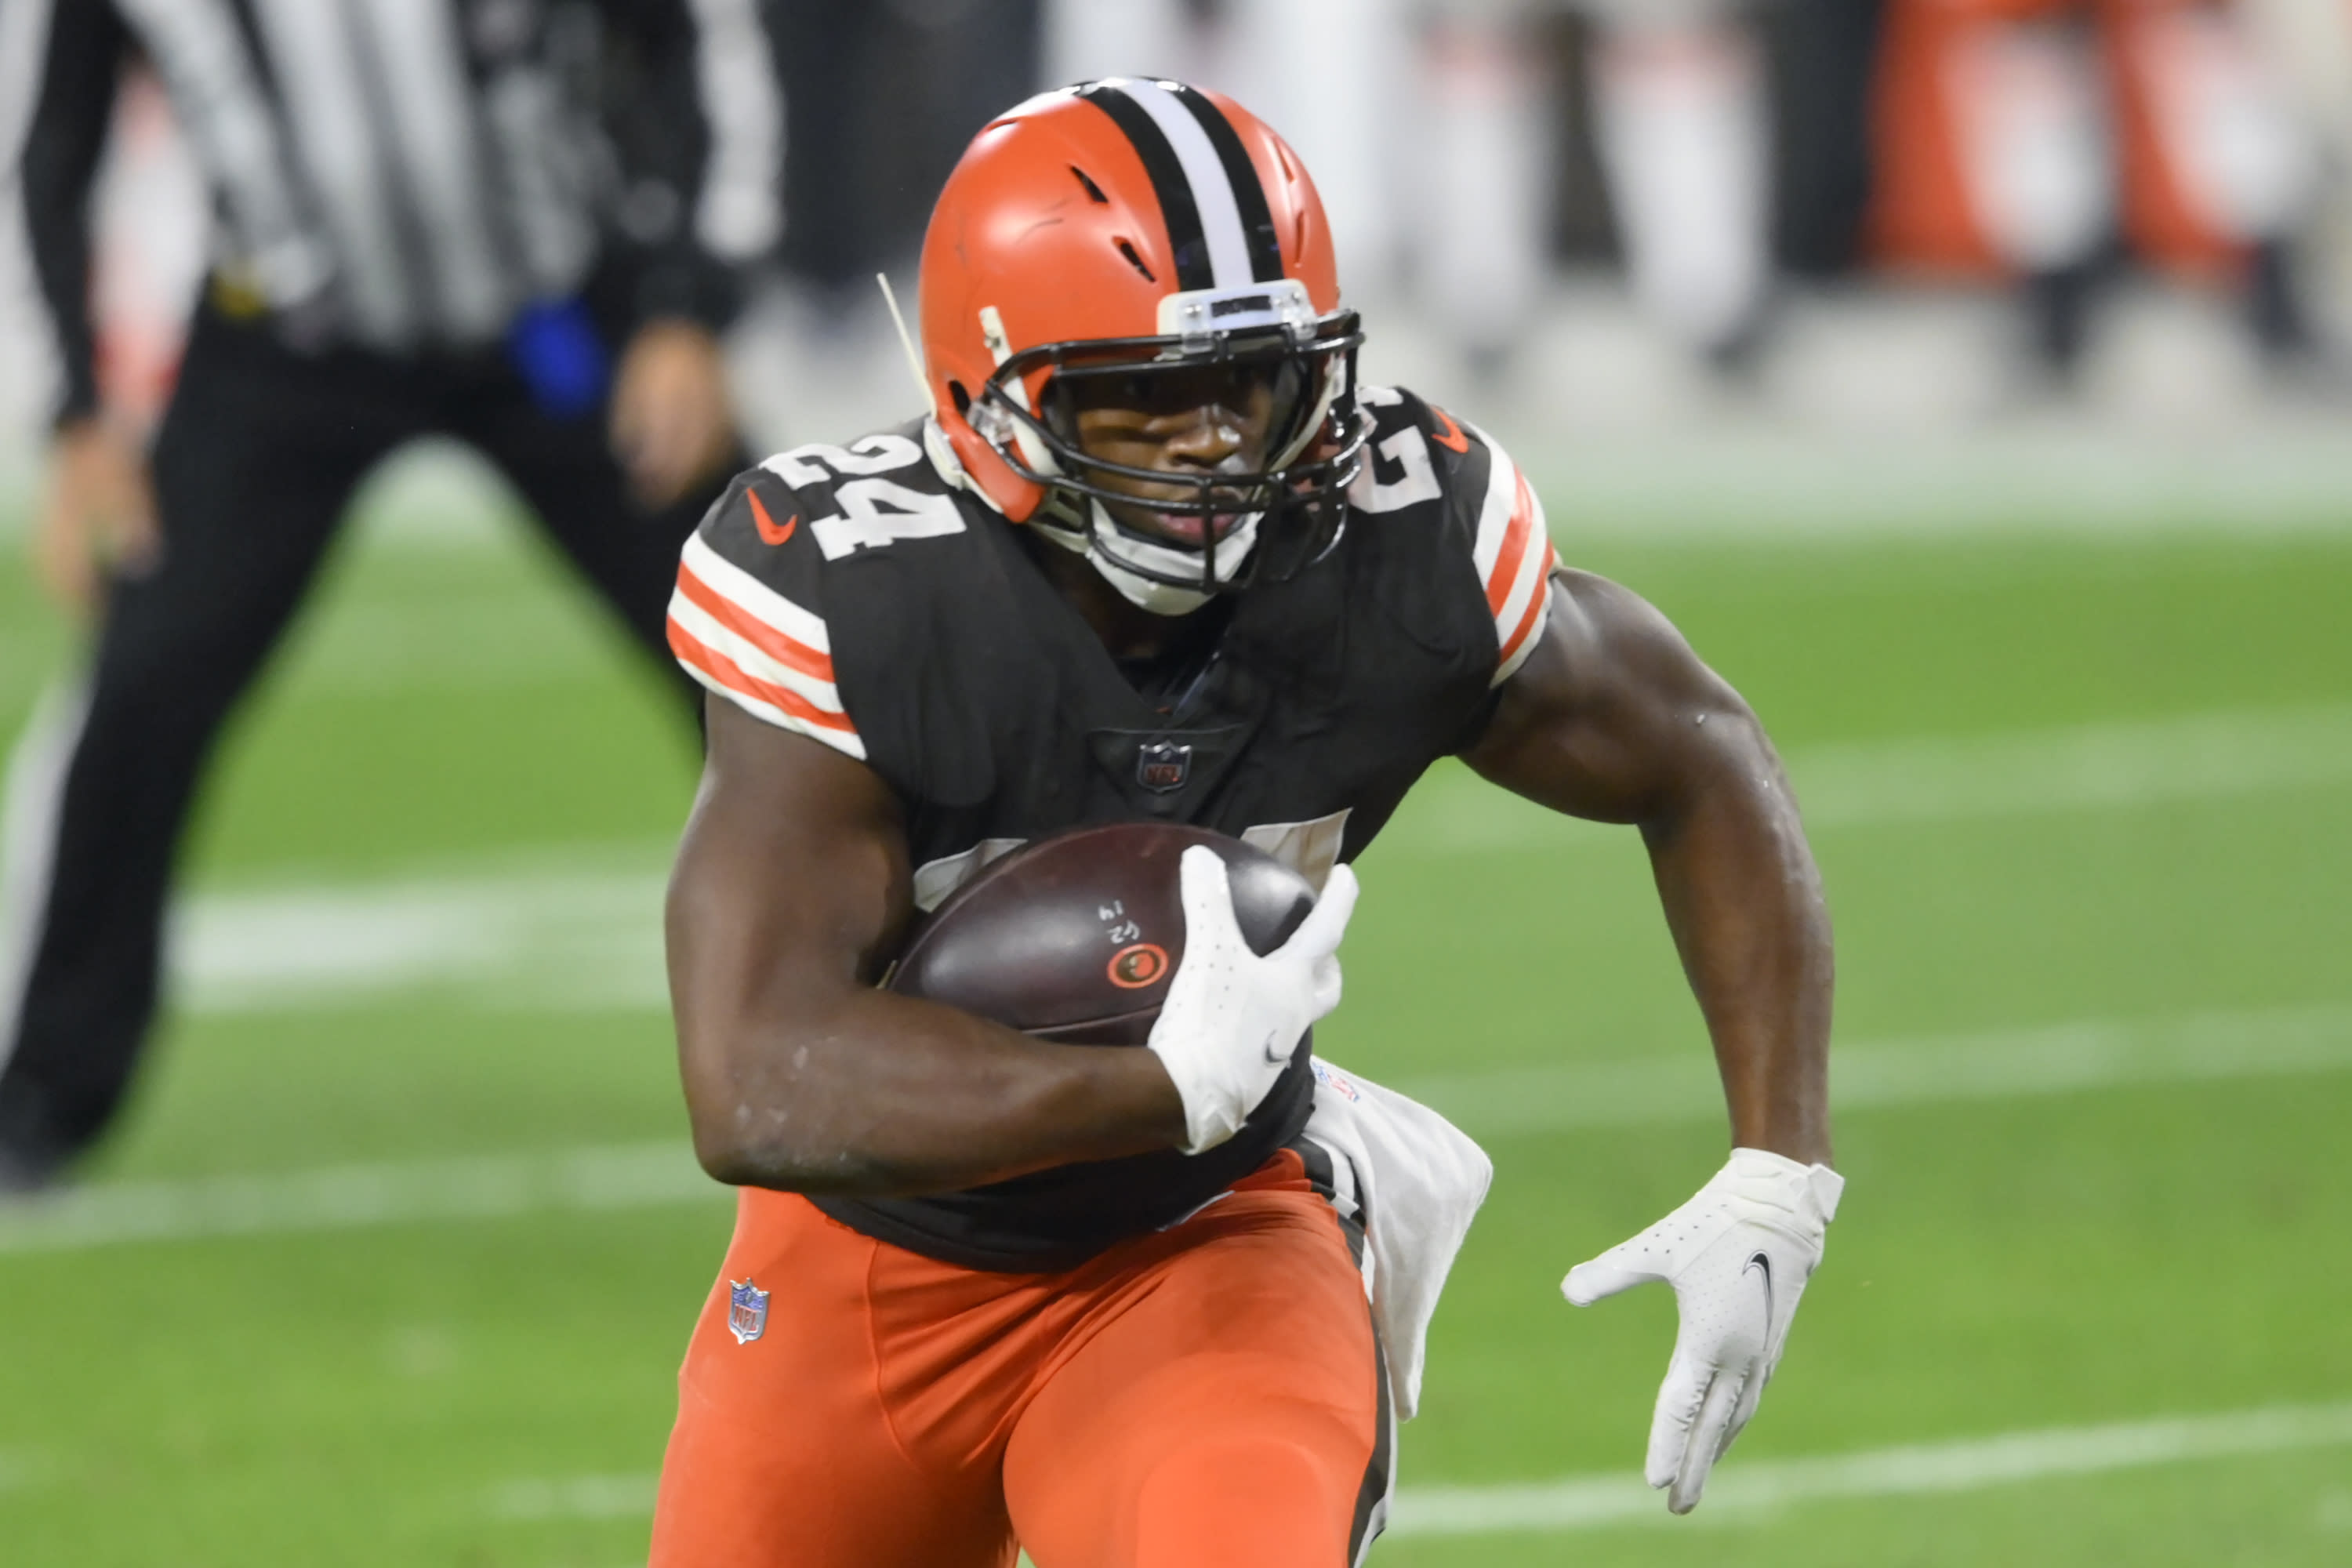 Browns activate RB Chubb after knee injury, will face Texans